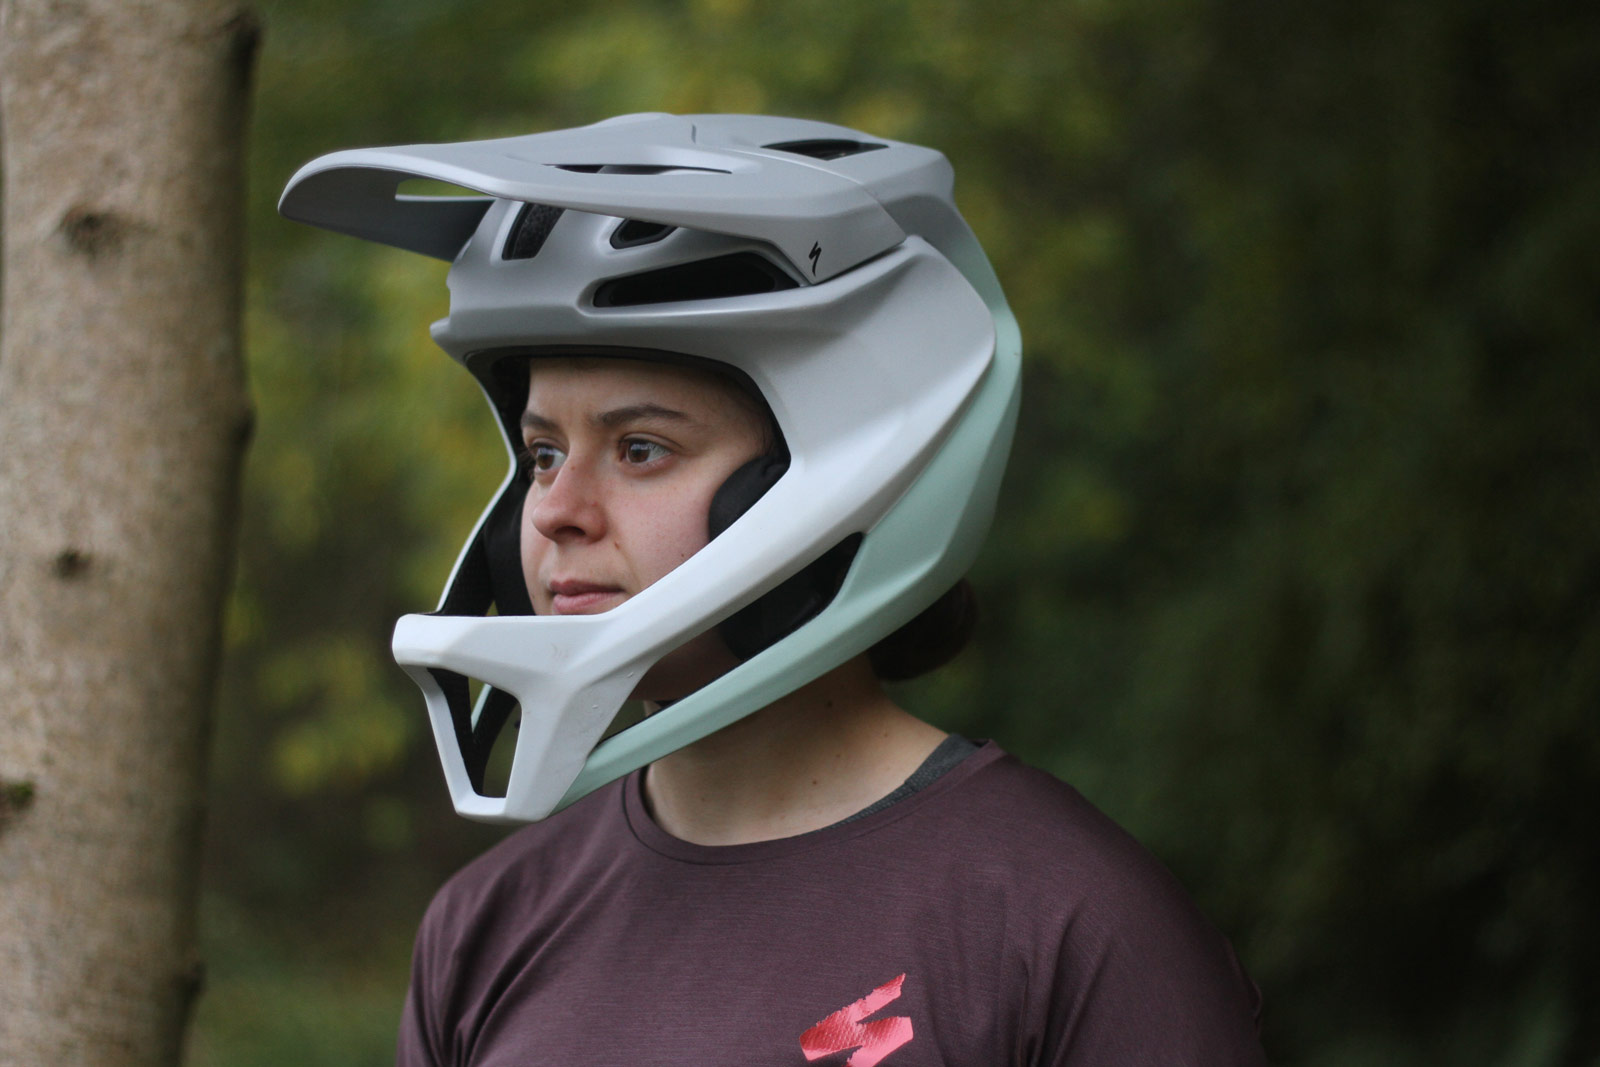 specialized gambit review lightweight full face helmet astm dh certified